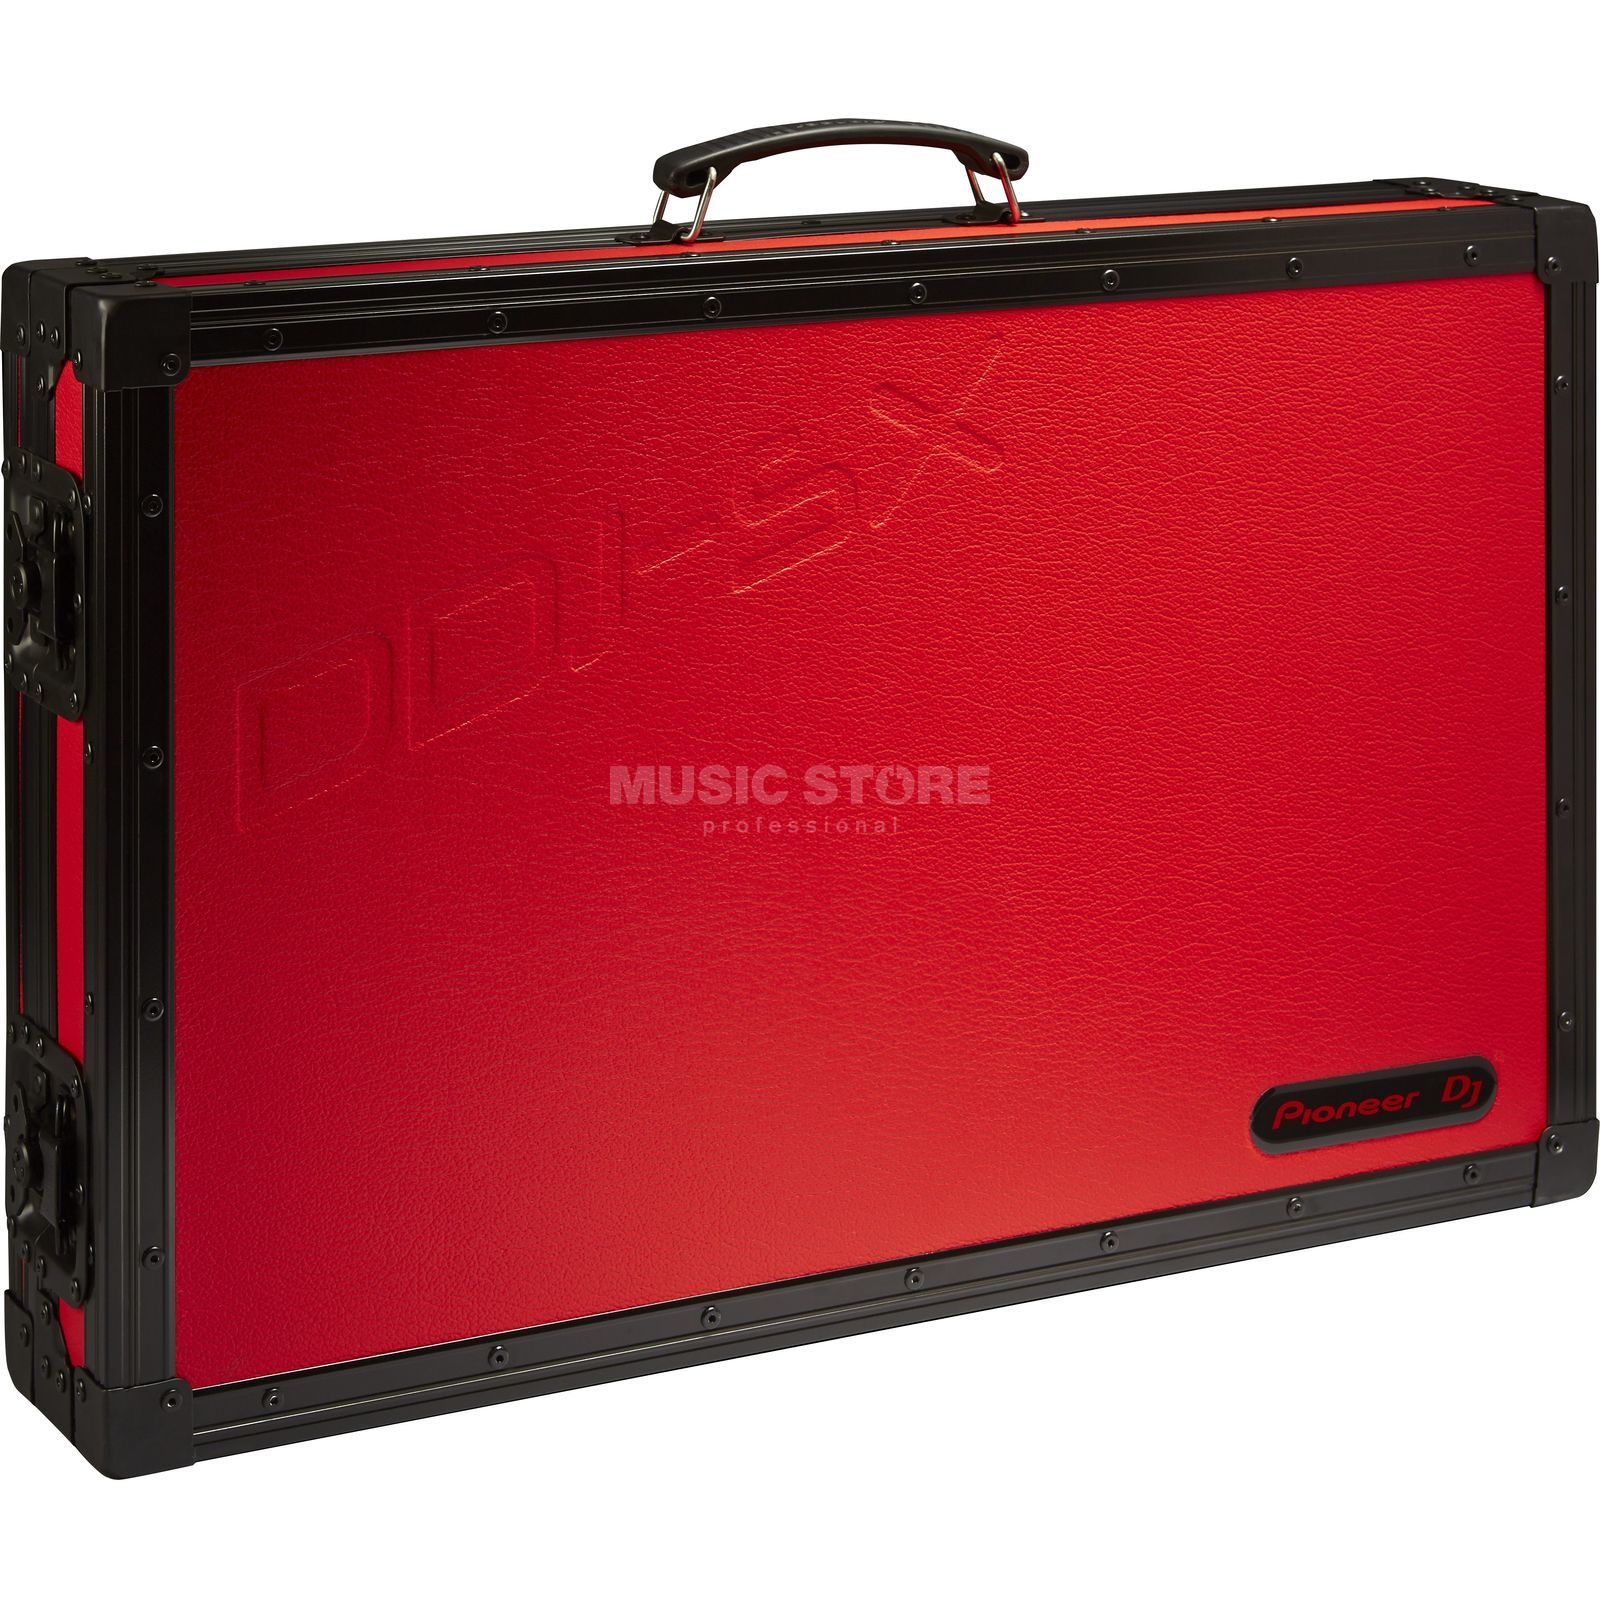 Pioneer PRO-DDJSXFLT Case for DDJ-SX with Laptop Mount Immagine prodotto